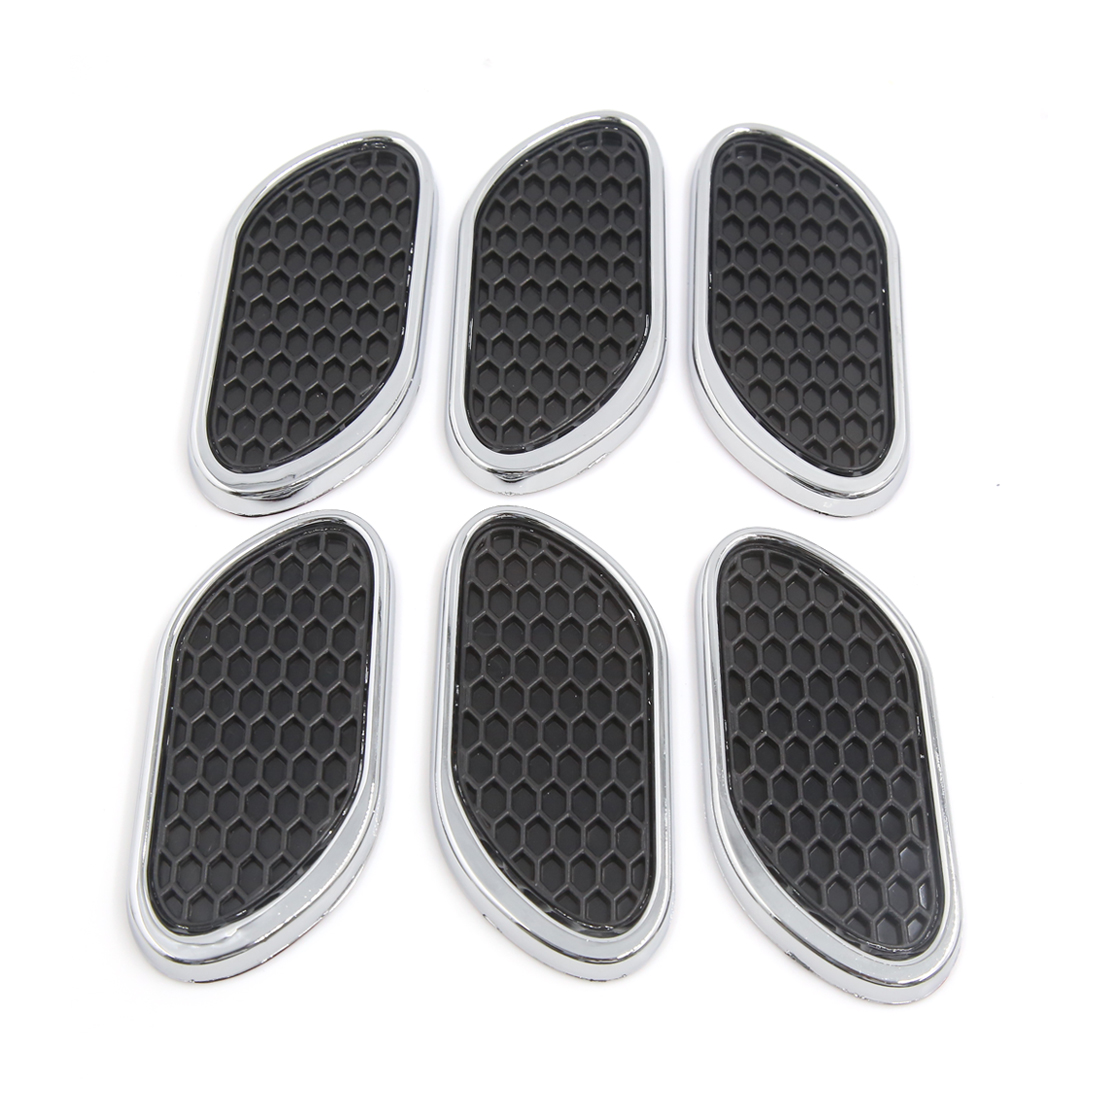 6Pcs Self-adhesive Car Air Flow Vent Fender Side Exterior Decoration Stickers